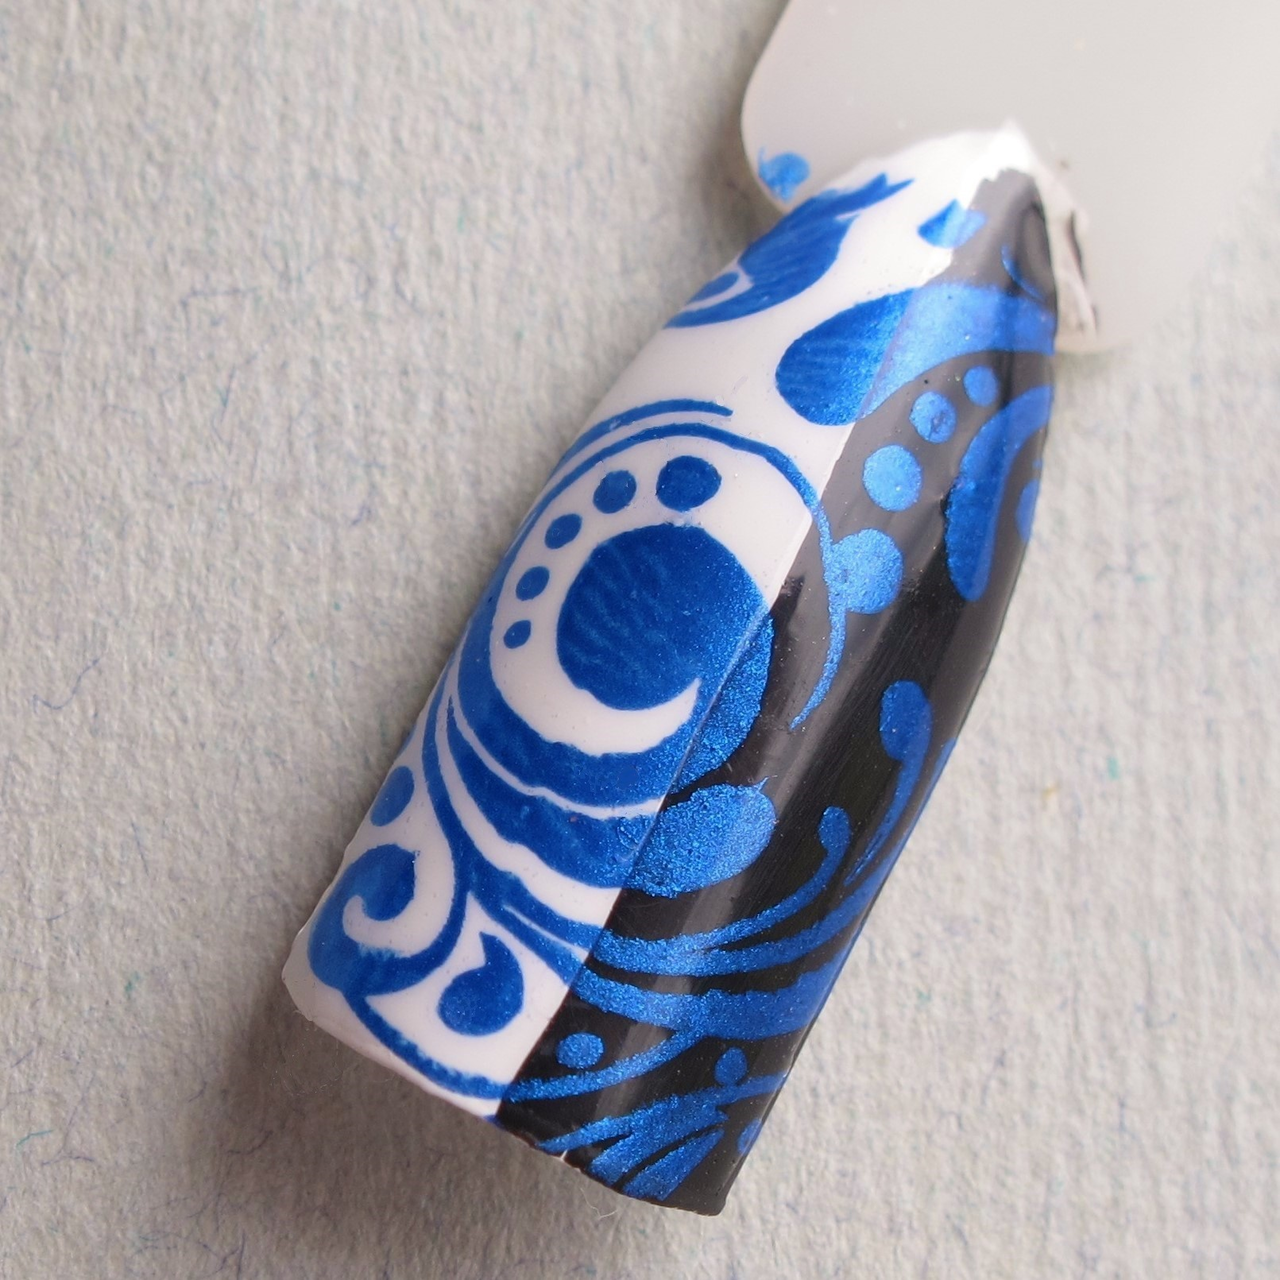 A Bolt From the Blue Stamping Polish by Hit the Bottle, get it in the USA at www.lanternandwren.com